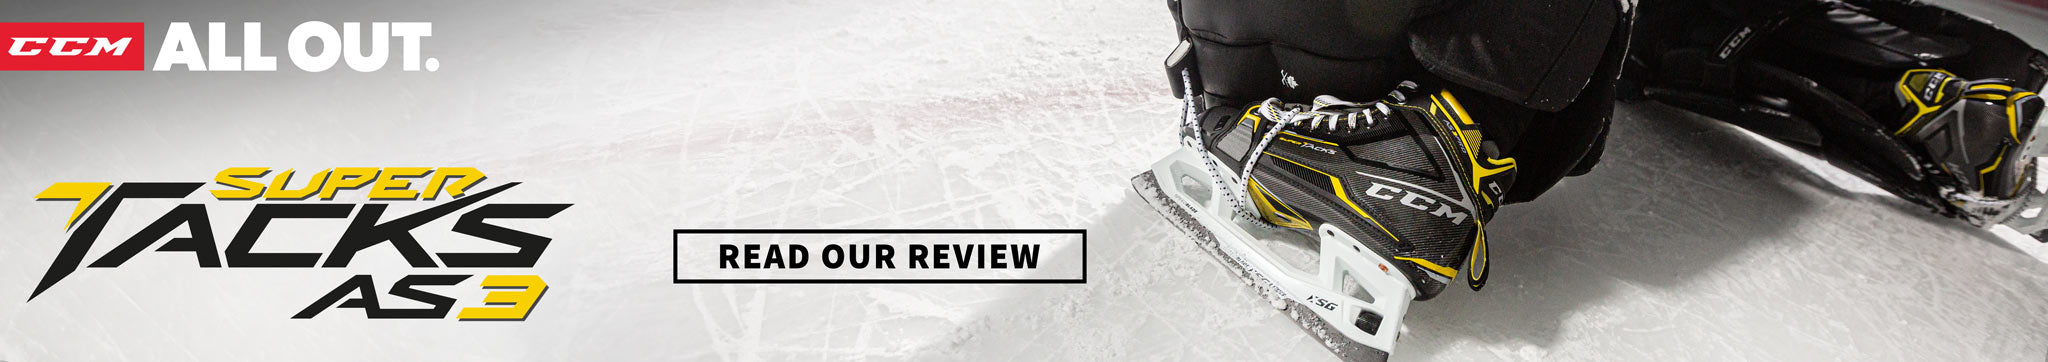 ccm as3 goal skate review